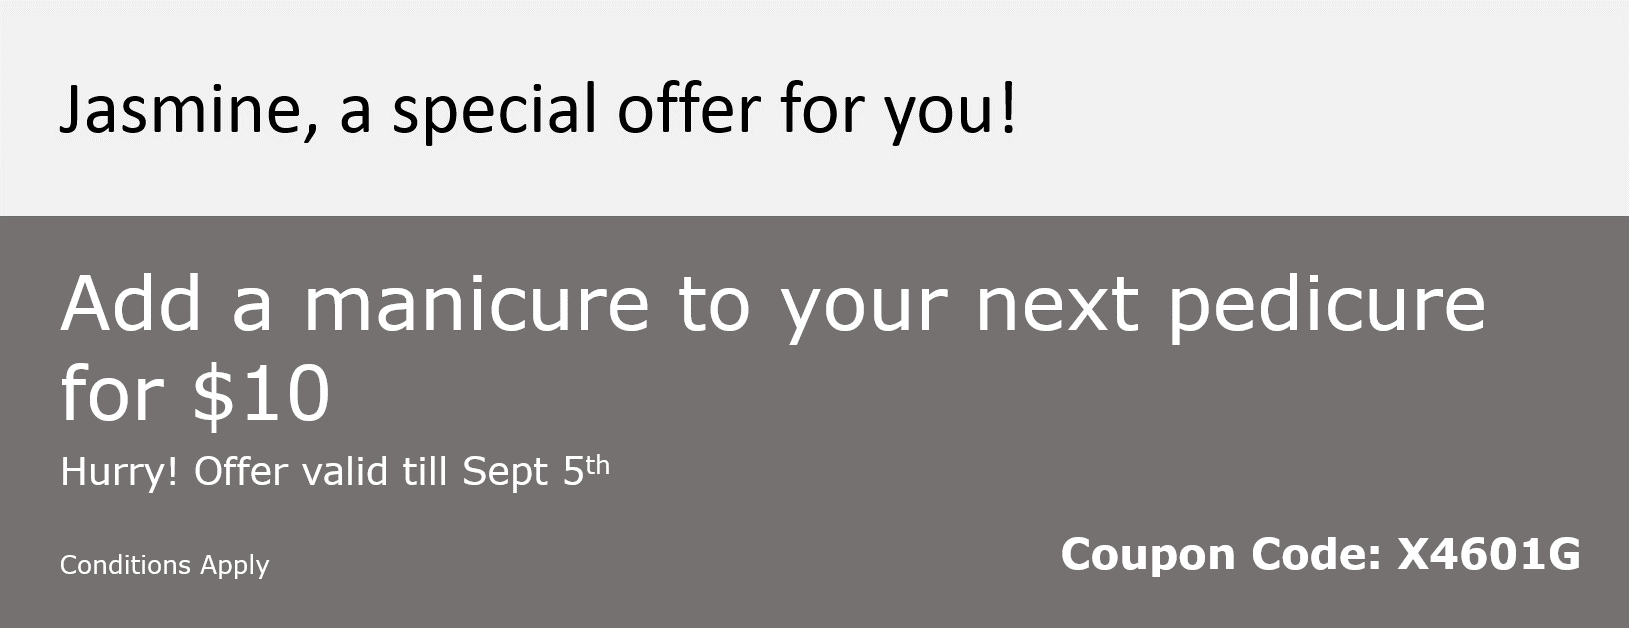 Custom Coupon - Cross sell service